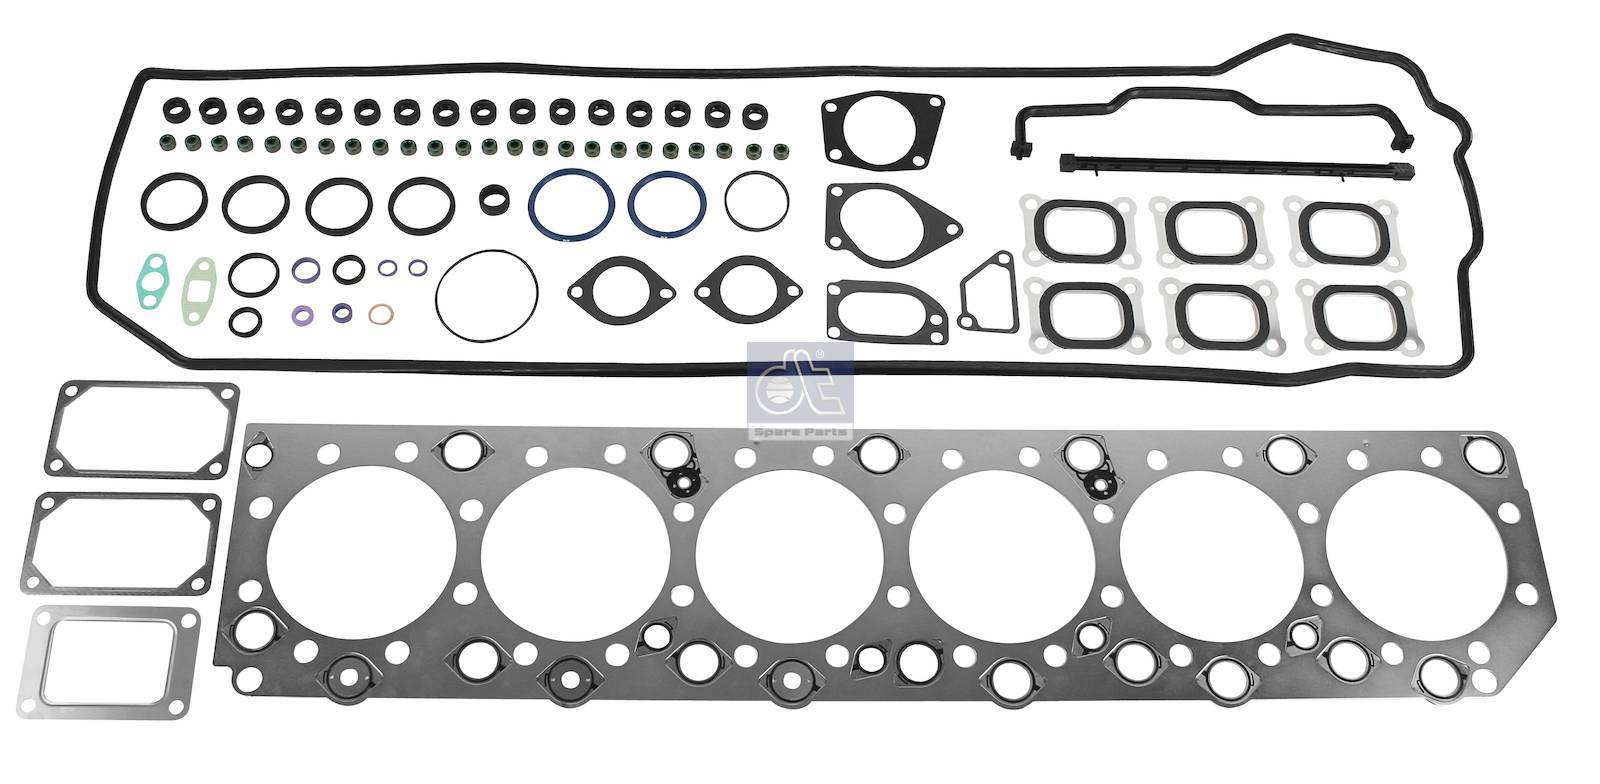 DT 2.91291 Gasket kit, decarbonizing 3099100S1 suitable for Volvo